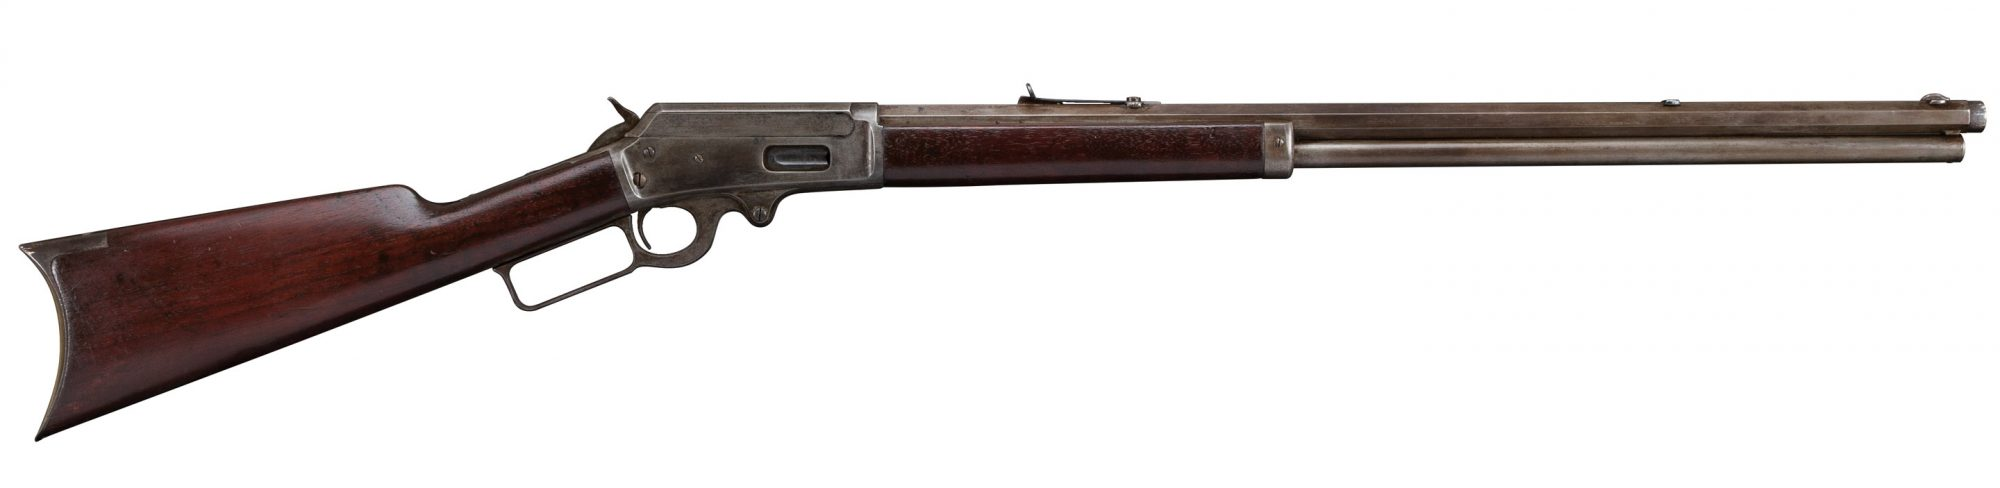 Photo of a Marlin Model 1893 before restoration by Turnbull Restoration of Bloomfield, NY